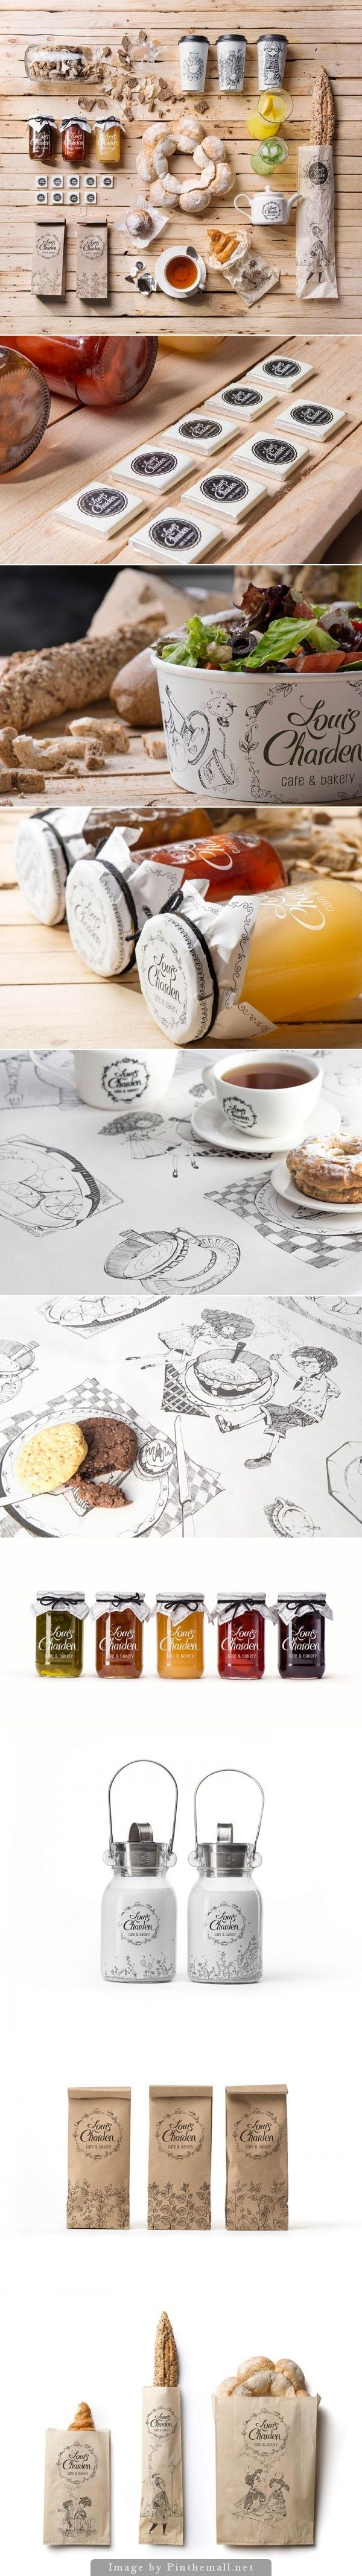 Louis Charden – Cafe & Bakery Identity by Backbone Branding